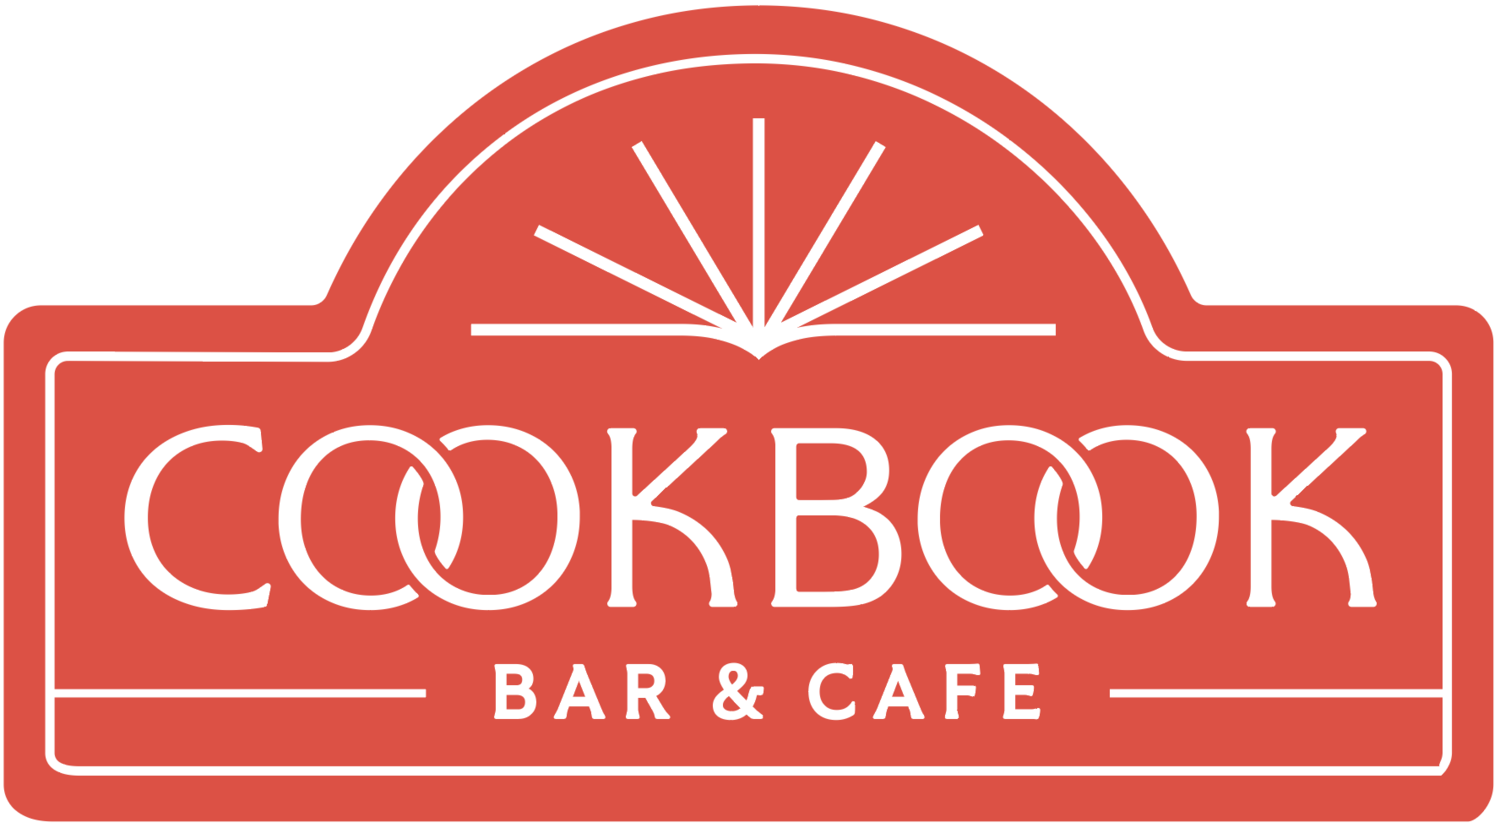 Cookbook Bar & Café